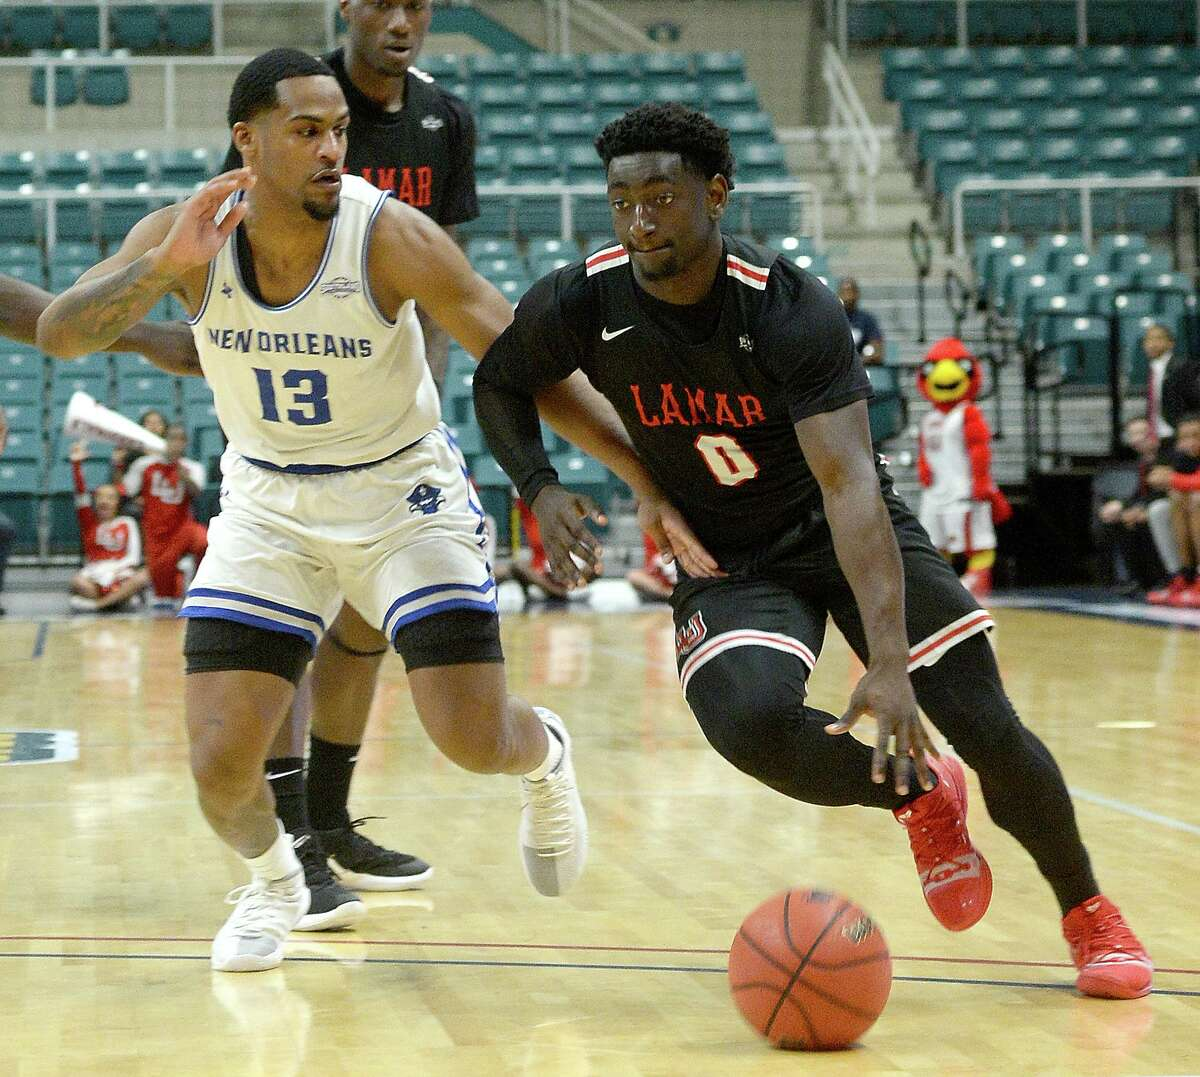 Lamar's Jordan Hunter drives against University of New Orleans' Jorge Rosa during their Southland tournament match-up Thursday at the Merrell Center in Katy. Photo taken Thursday, March 14, 2019 Kim Brent/The Enterprise